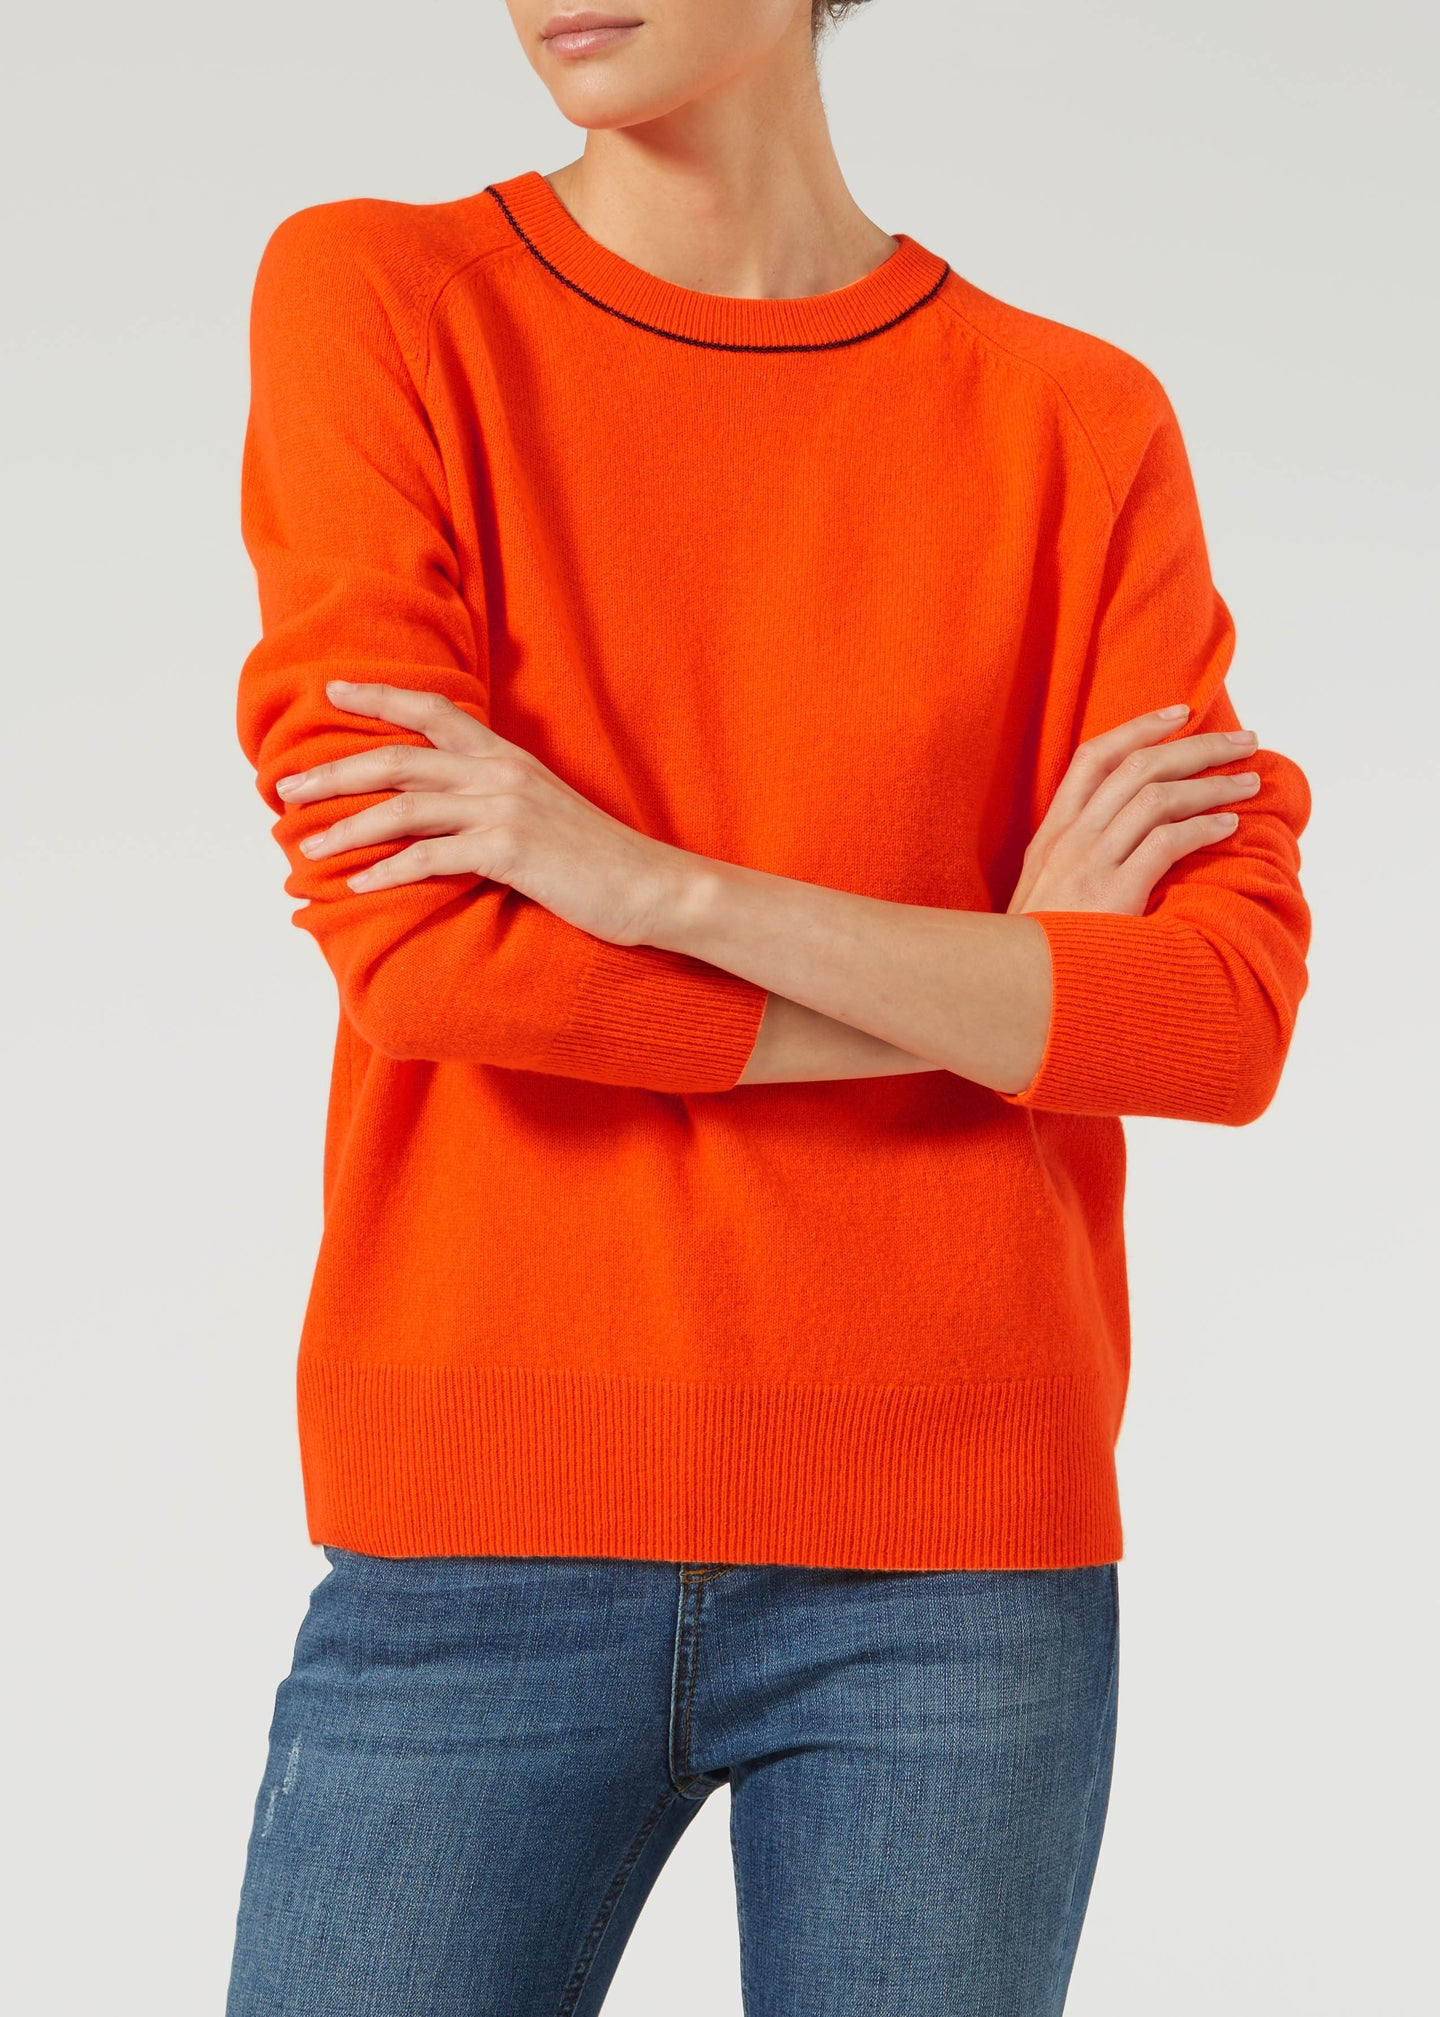 Downtime Cashmere Jumper - Future Is Bright